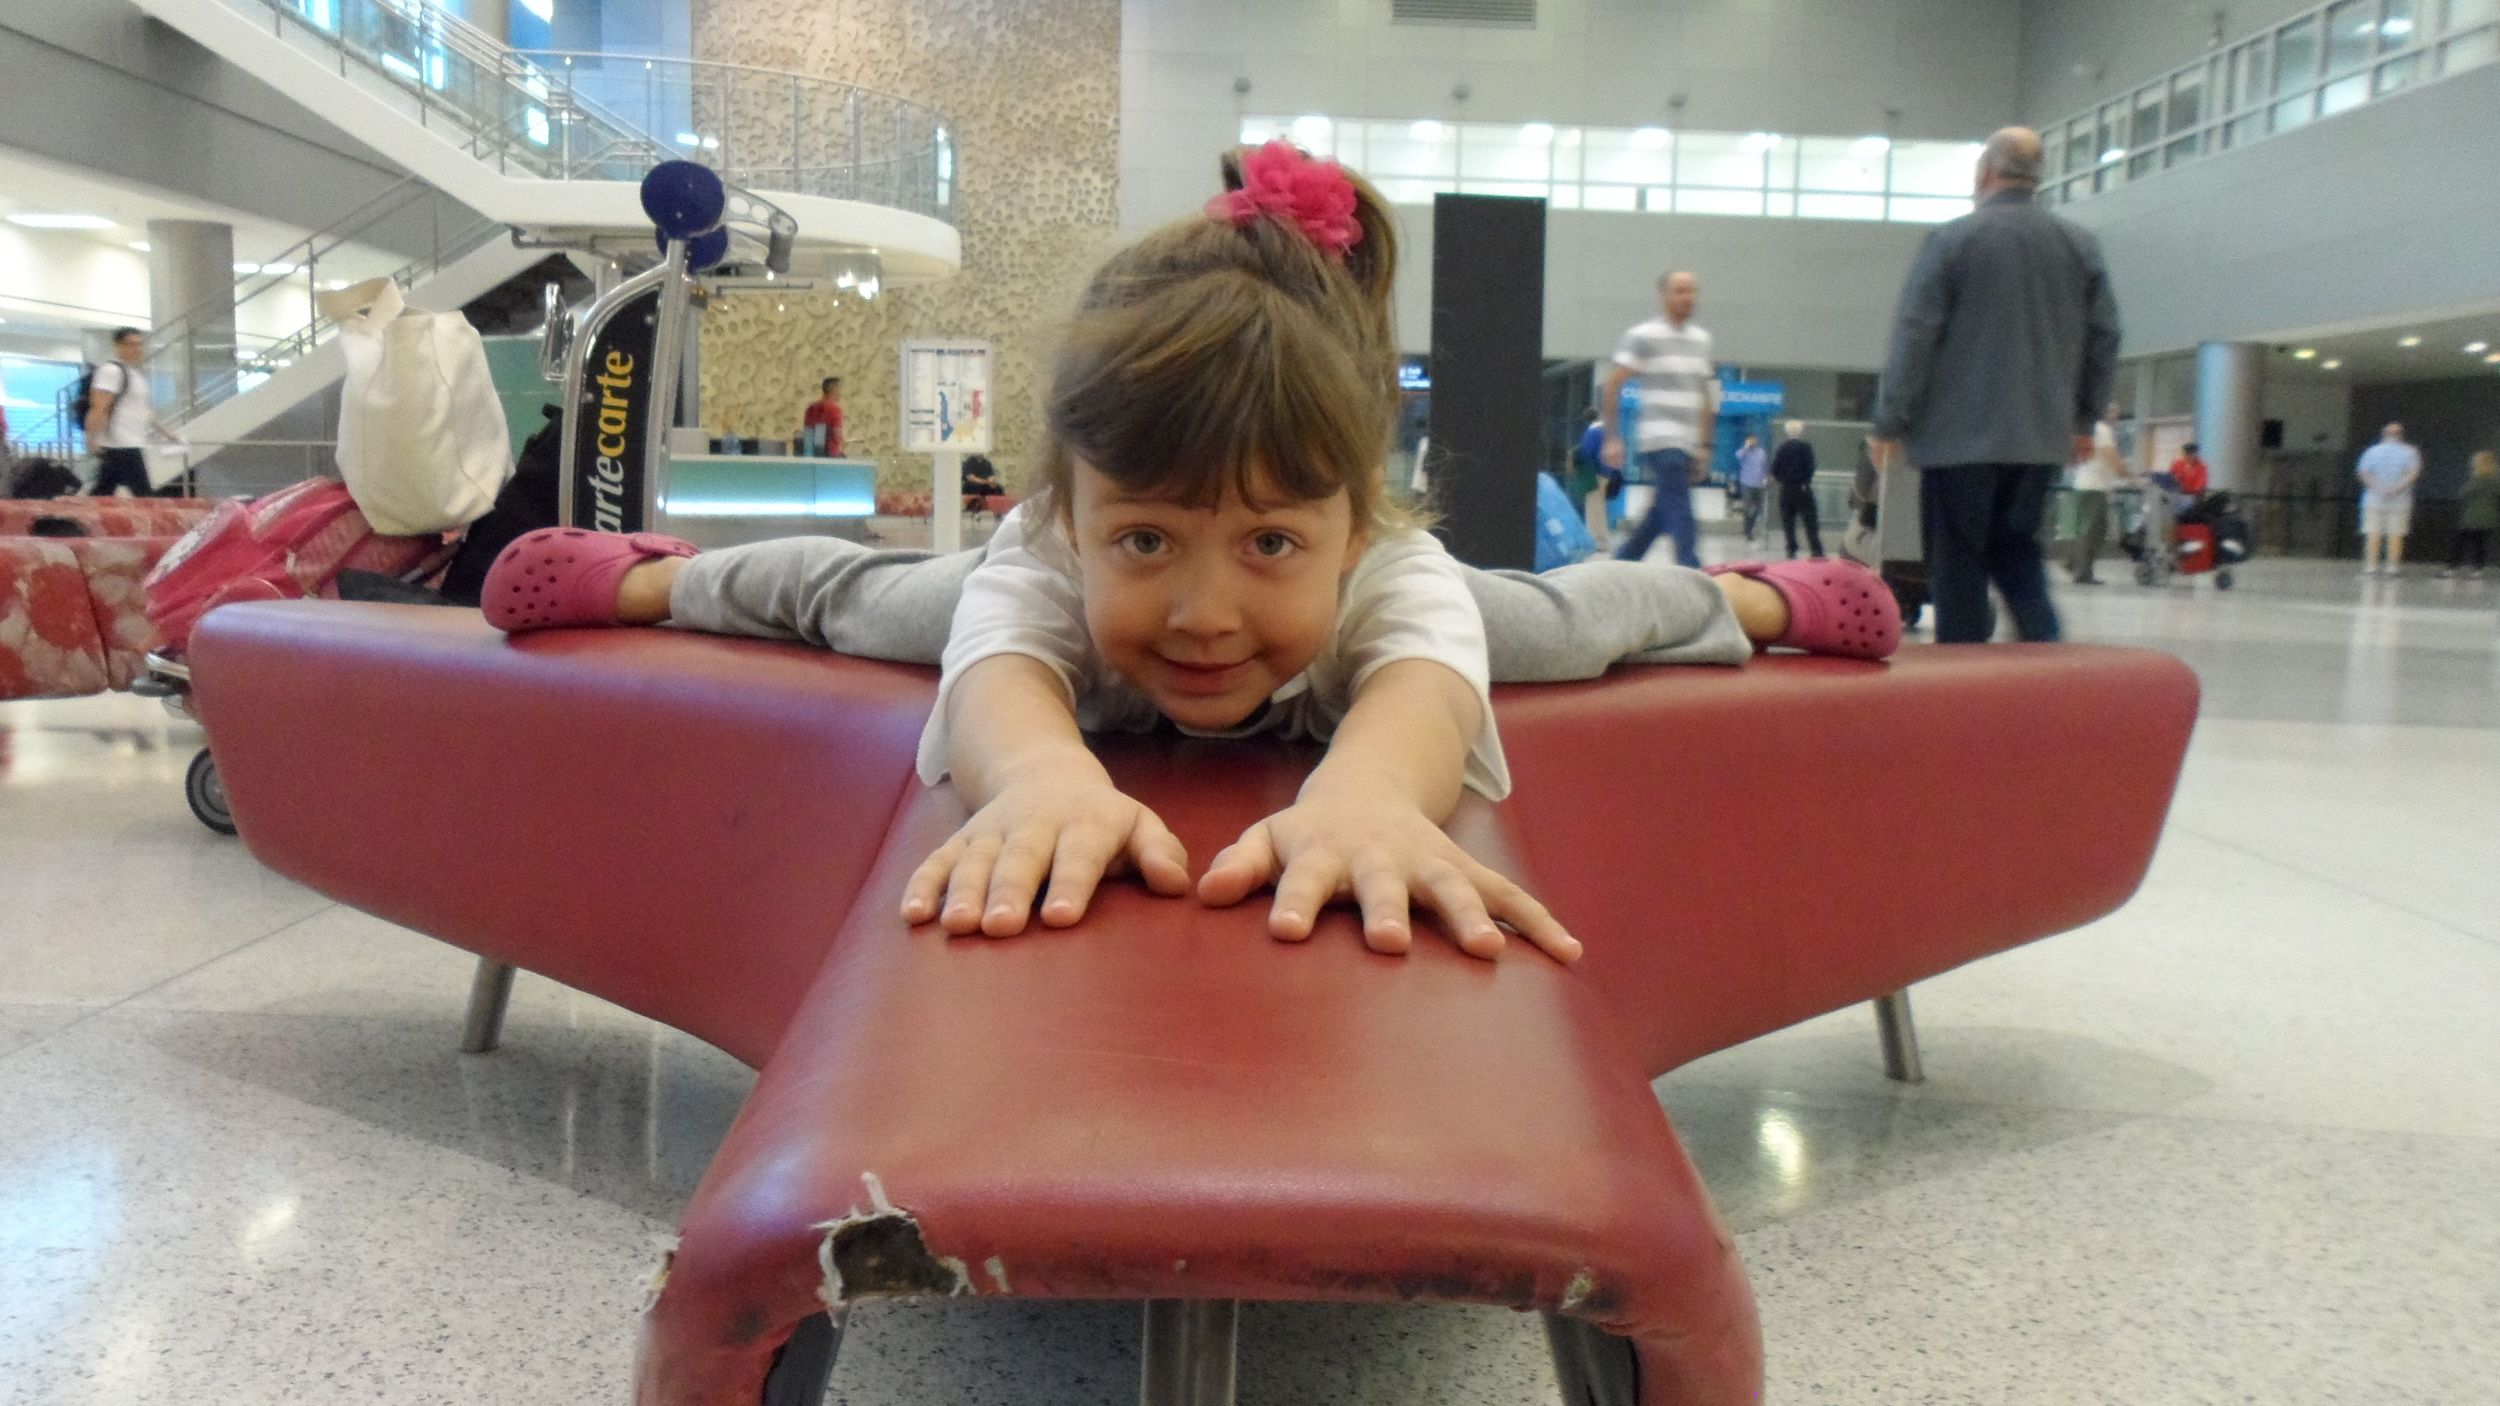 Fun at airports